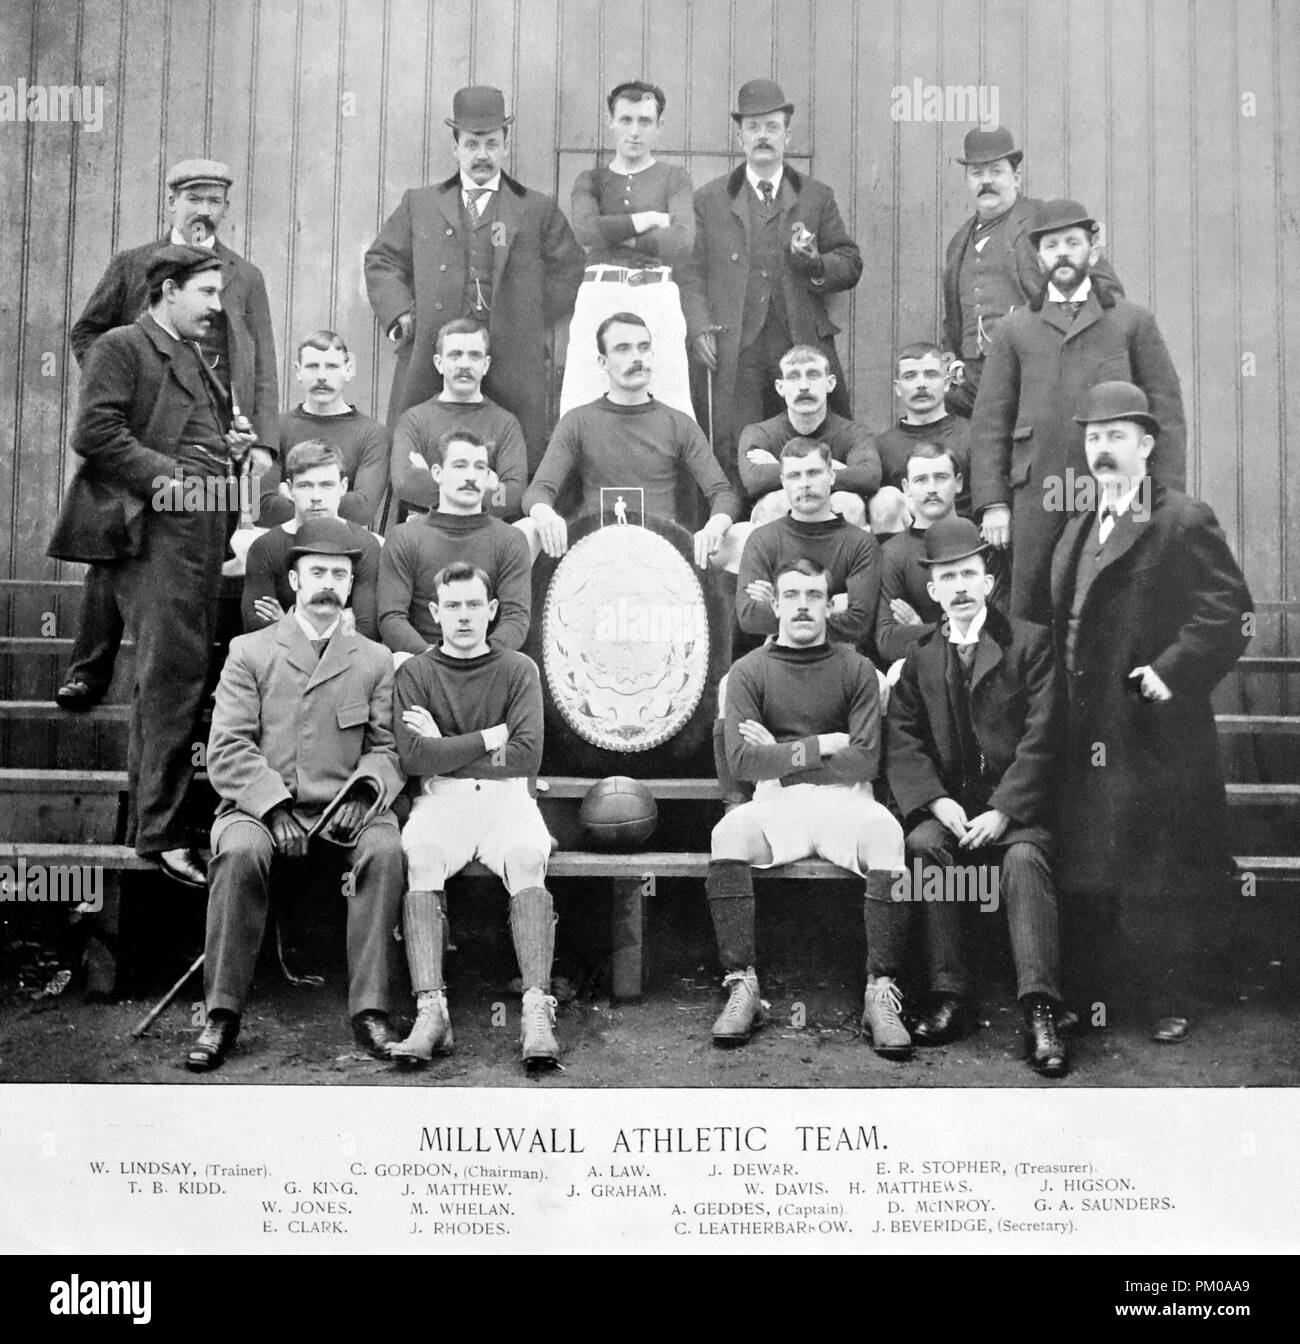 Millwall Athletic Football Team, 1890s Stock Photo